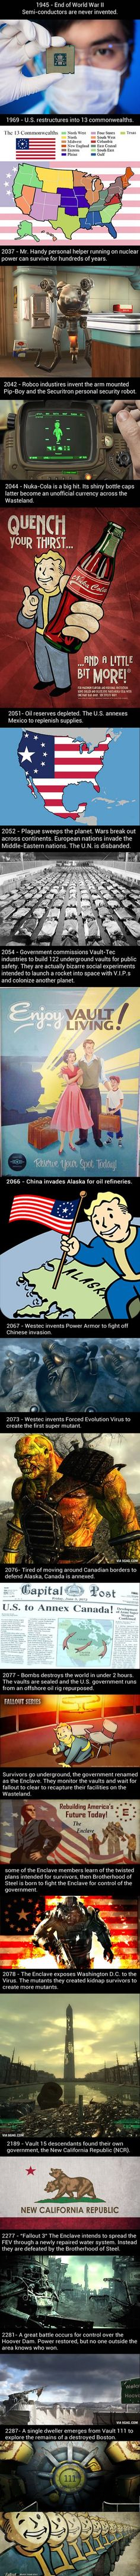 The history of Fallout 4, if you play fallout you should take a look at this ~Korie-Anne